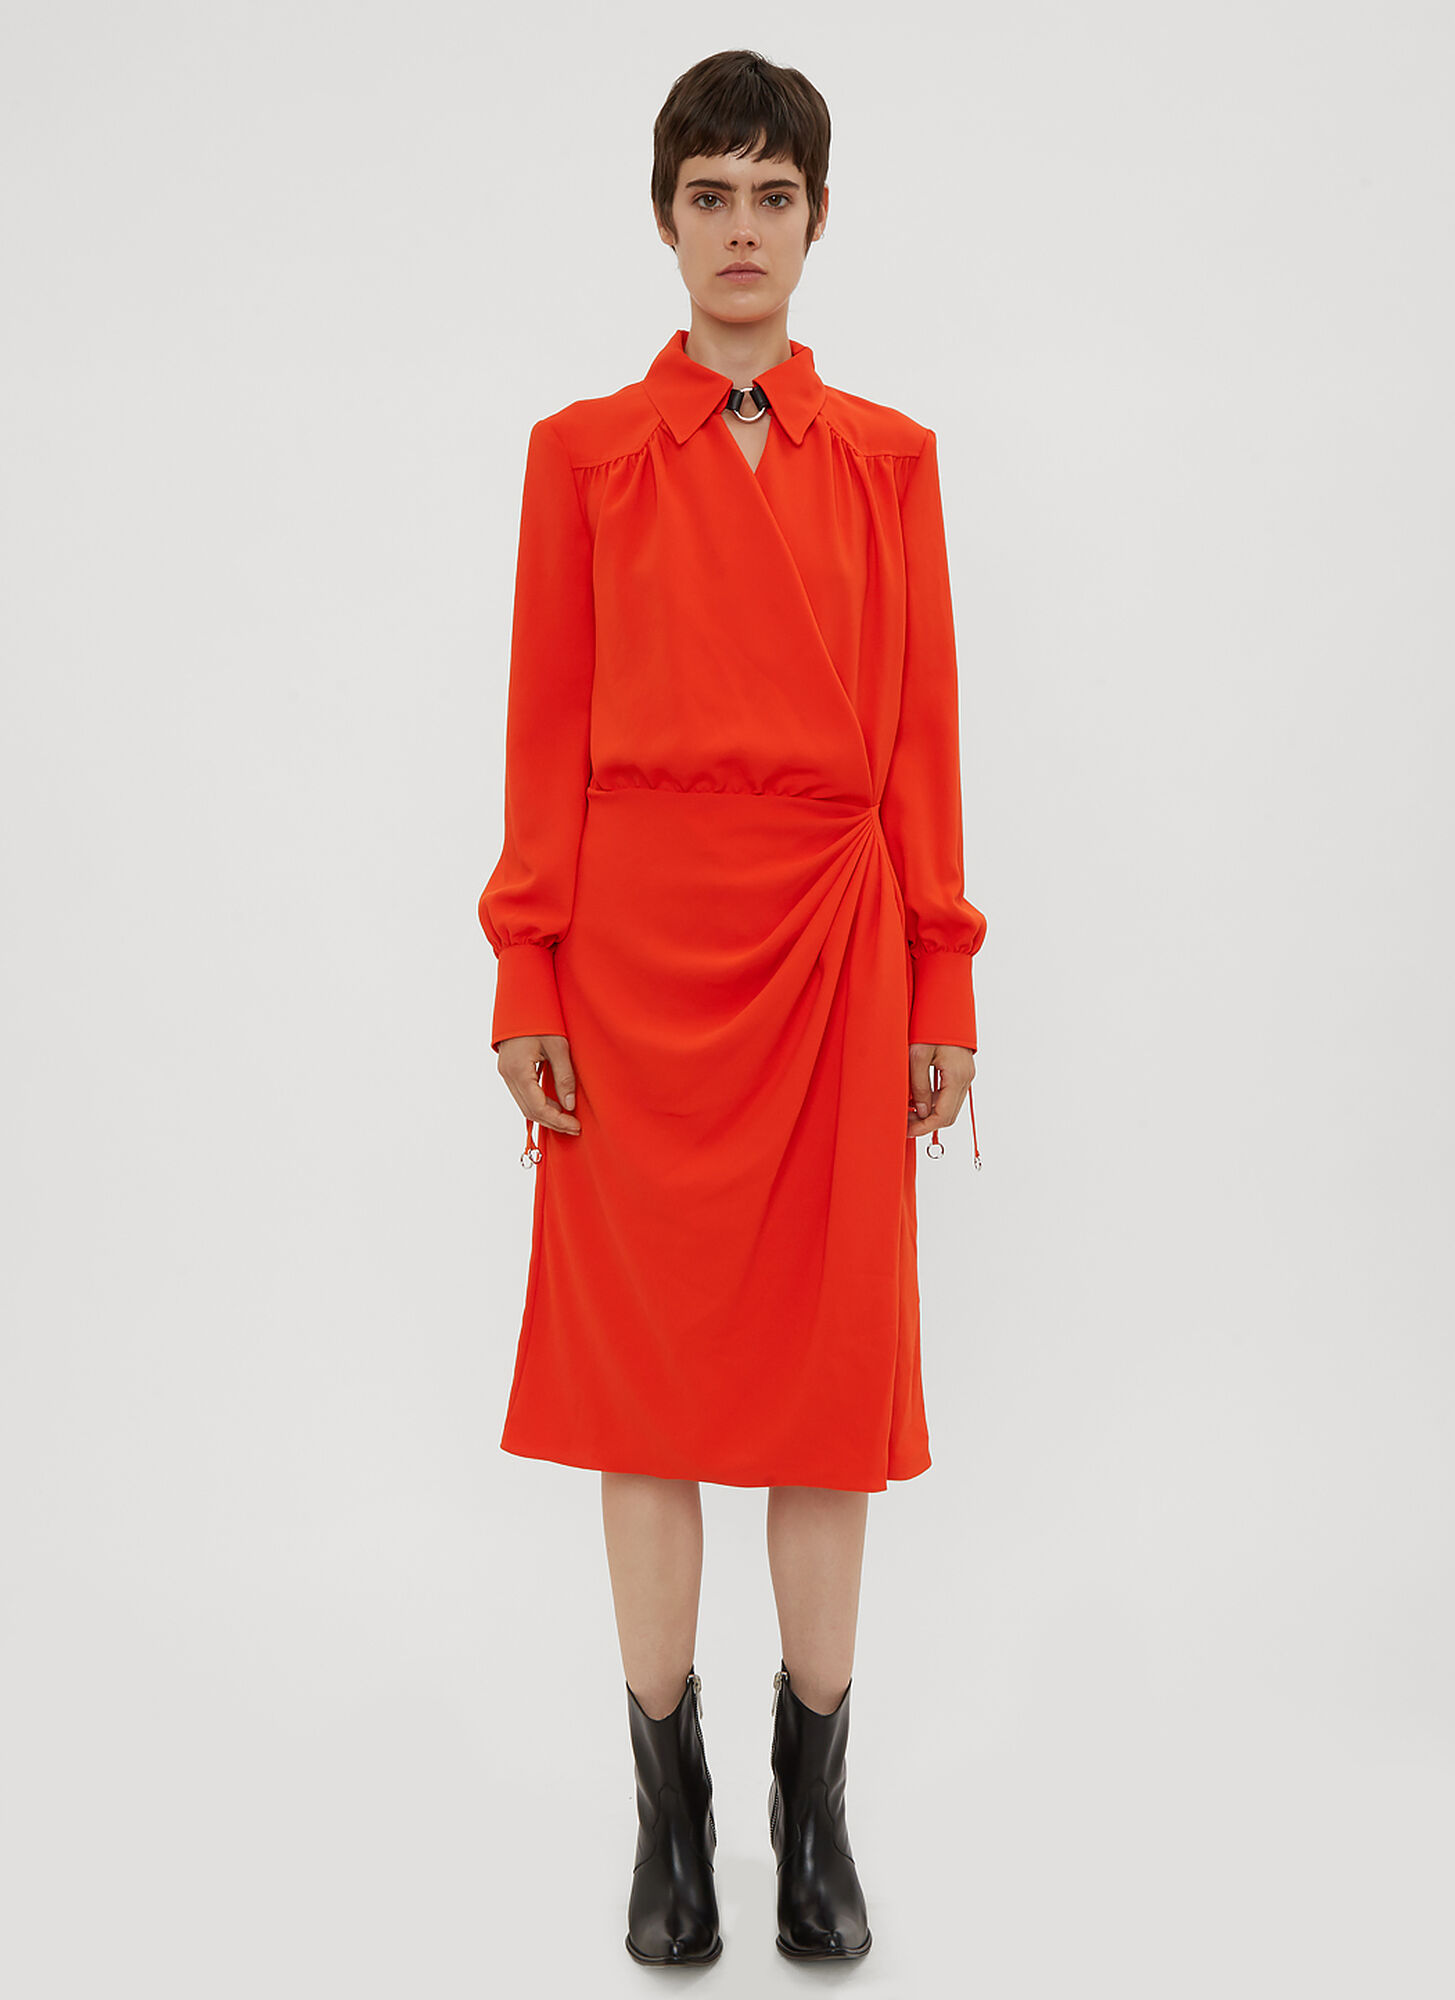 Altuzarra Kat Drape Dress in Orange